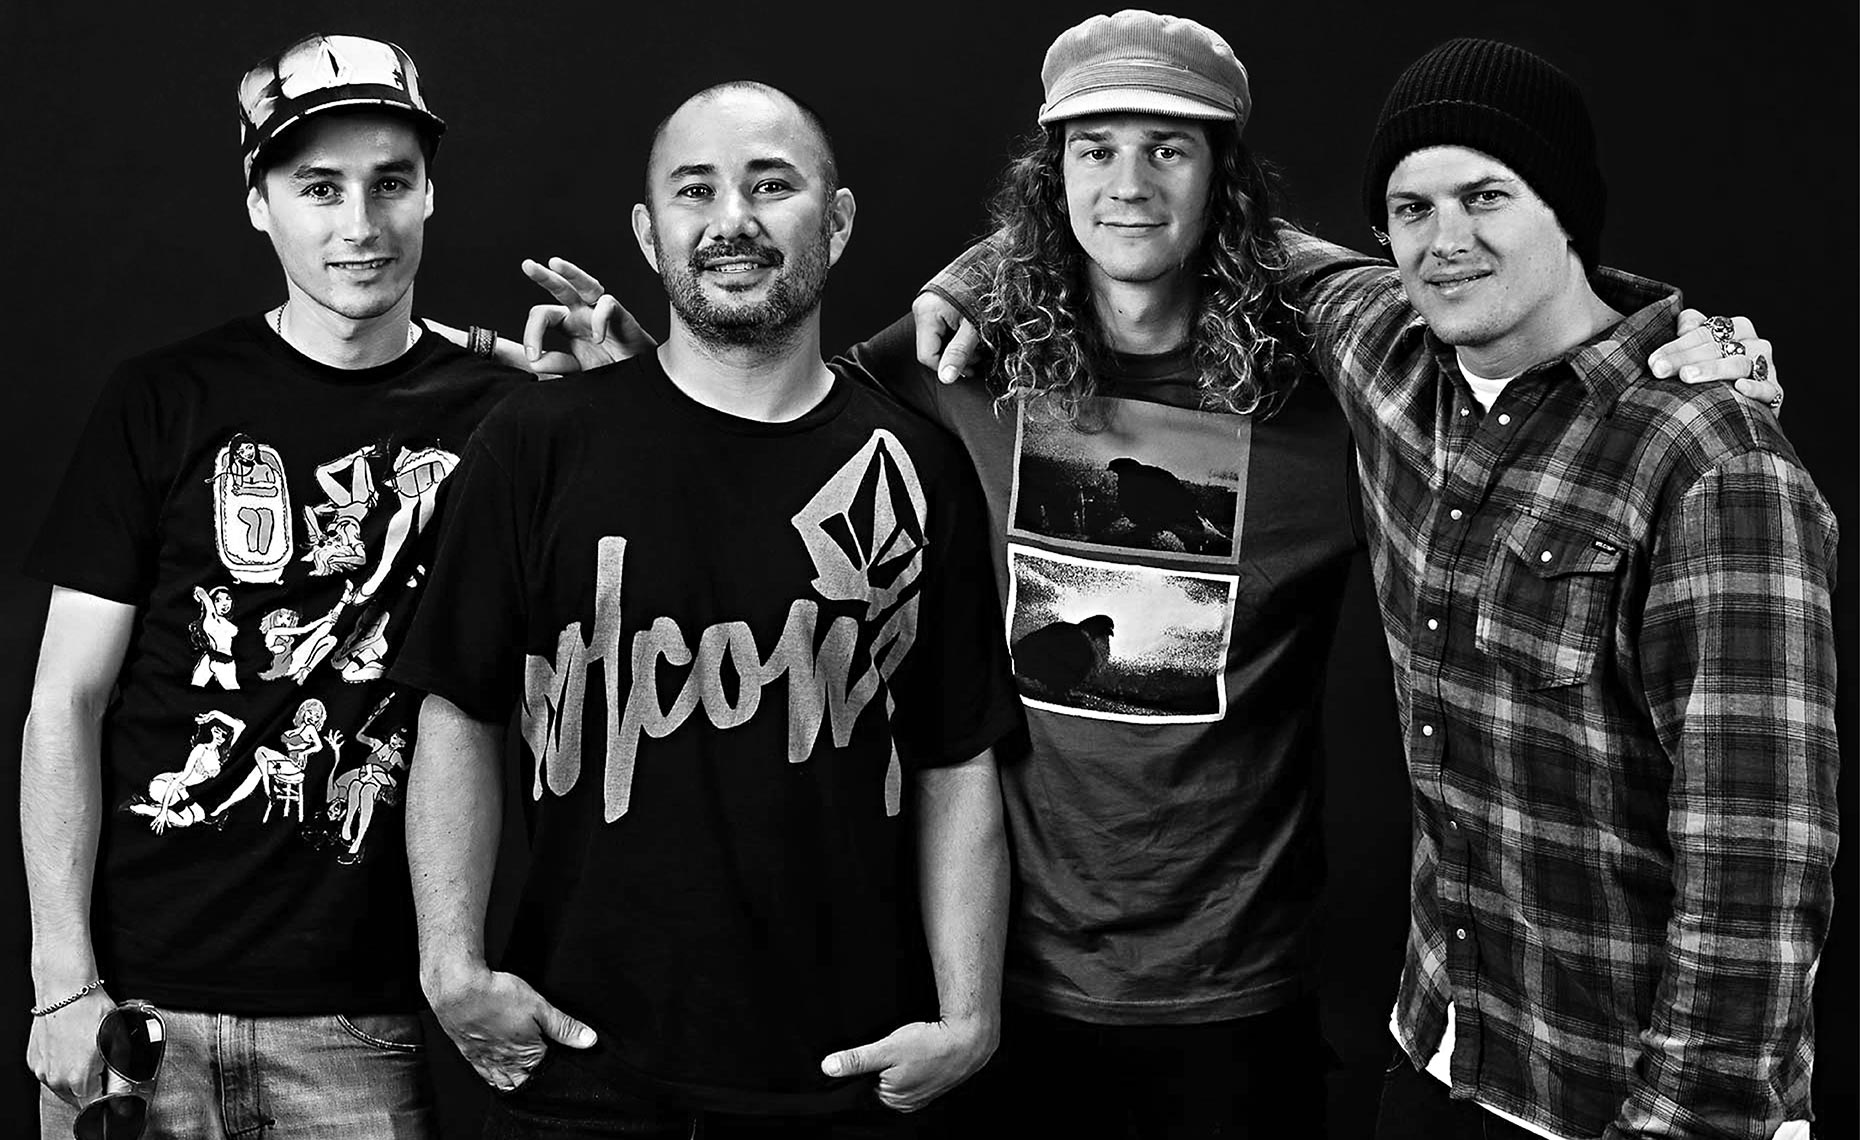 28_Gigi_Ruf_Bryan_Iguchi_Zac_Marben_Seth_Huot_Volcom_team_Portrait_Lifestyle_Chris_Wellhausen_Photography.JPG